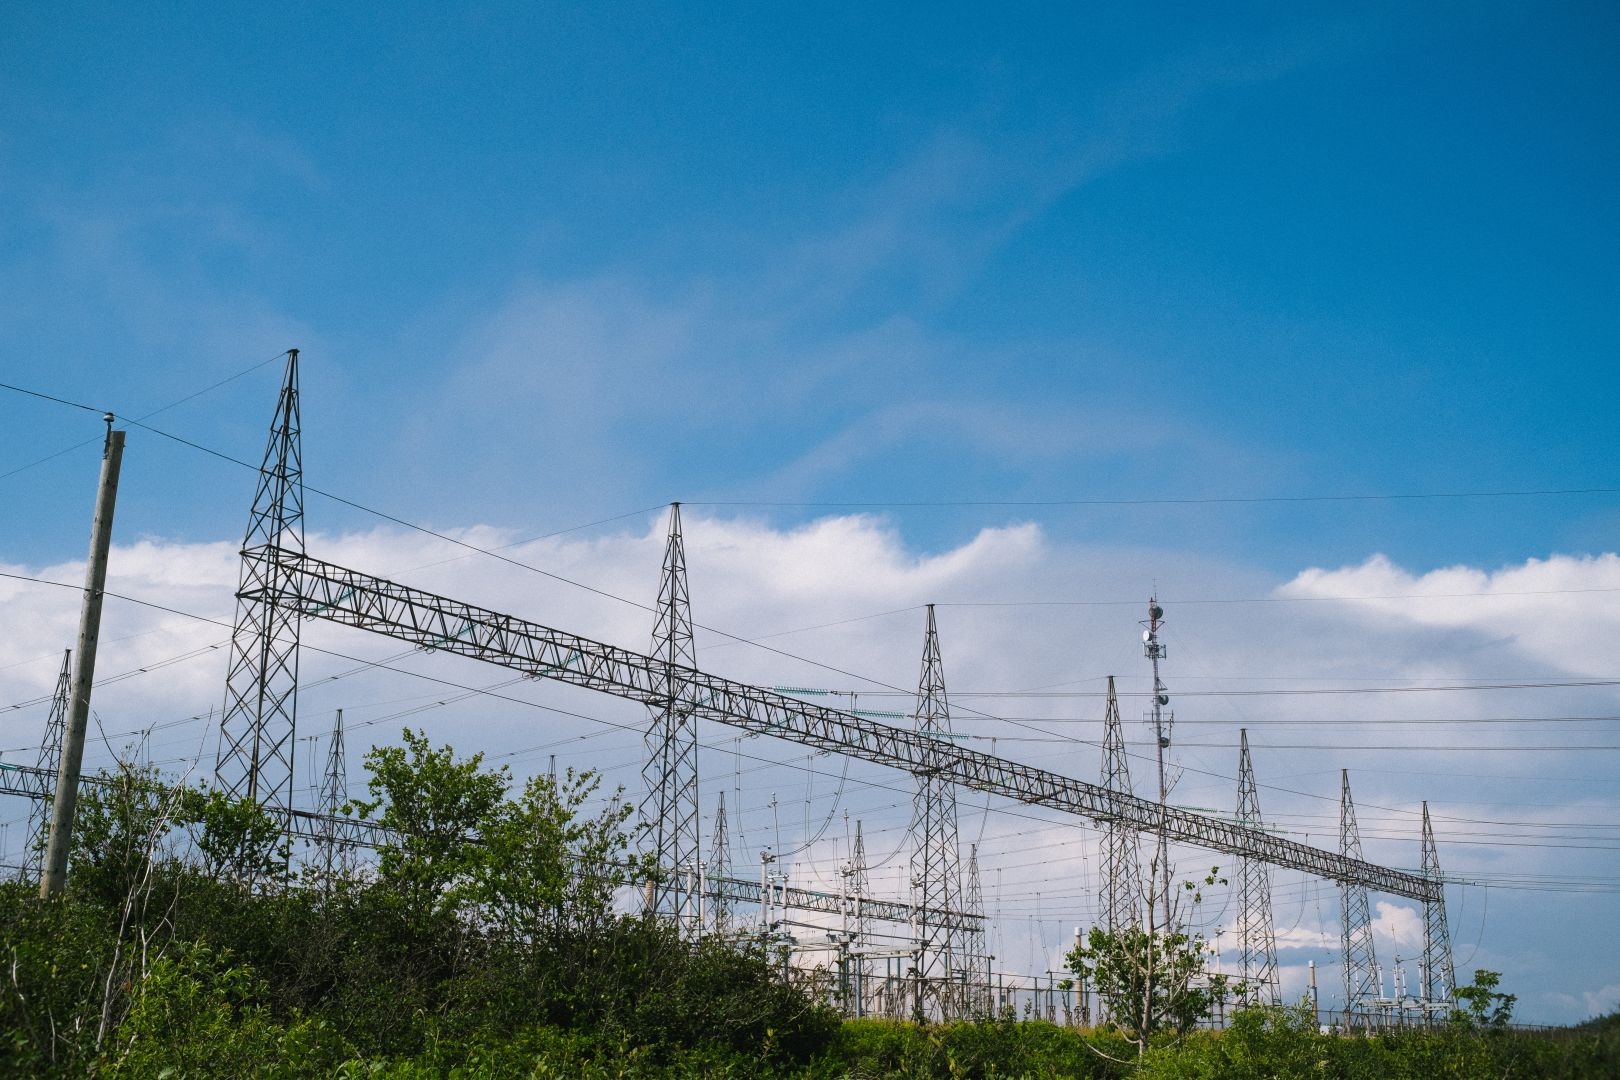 A photo depicting Transmission Power Lines